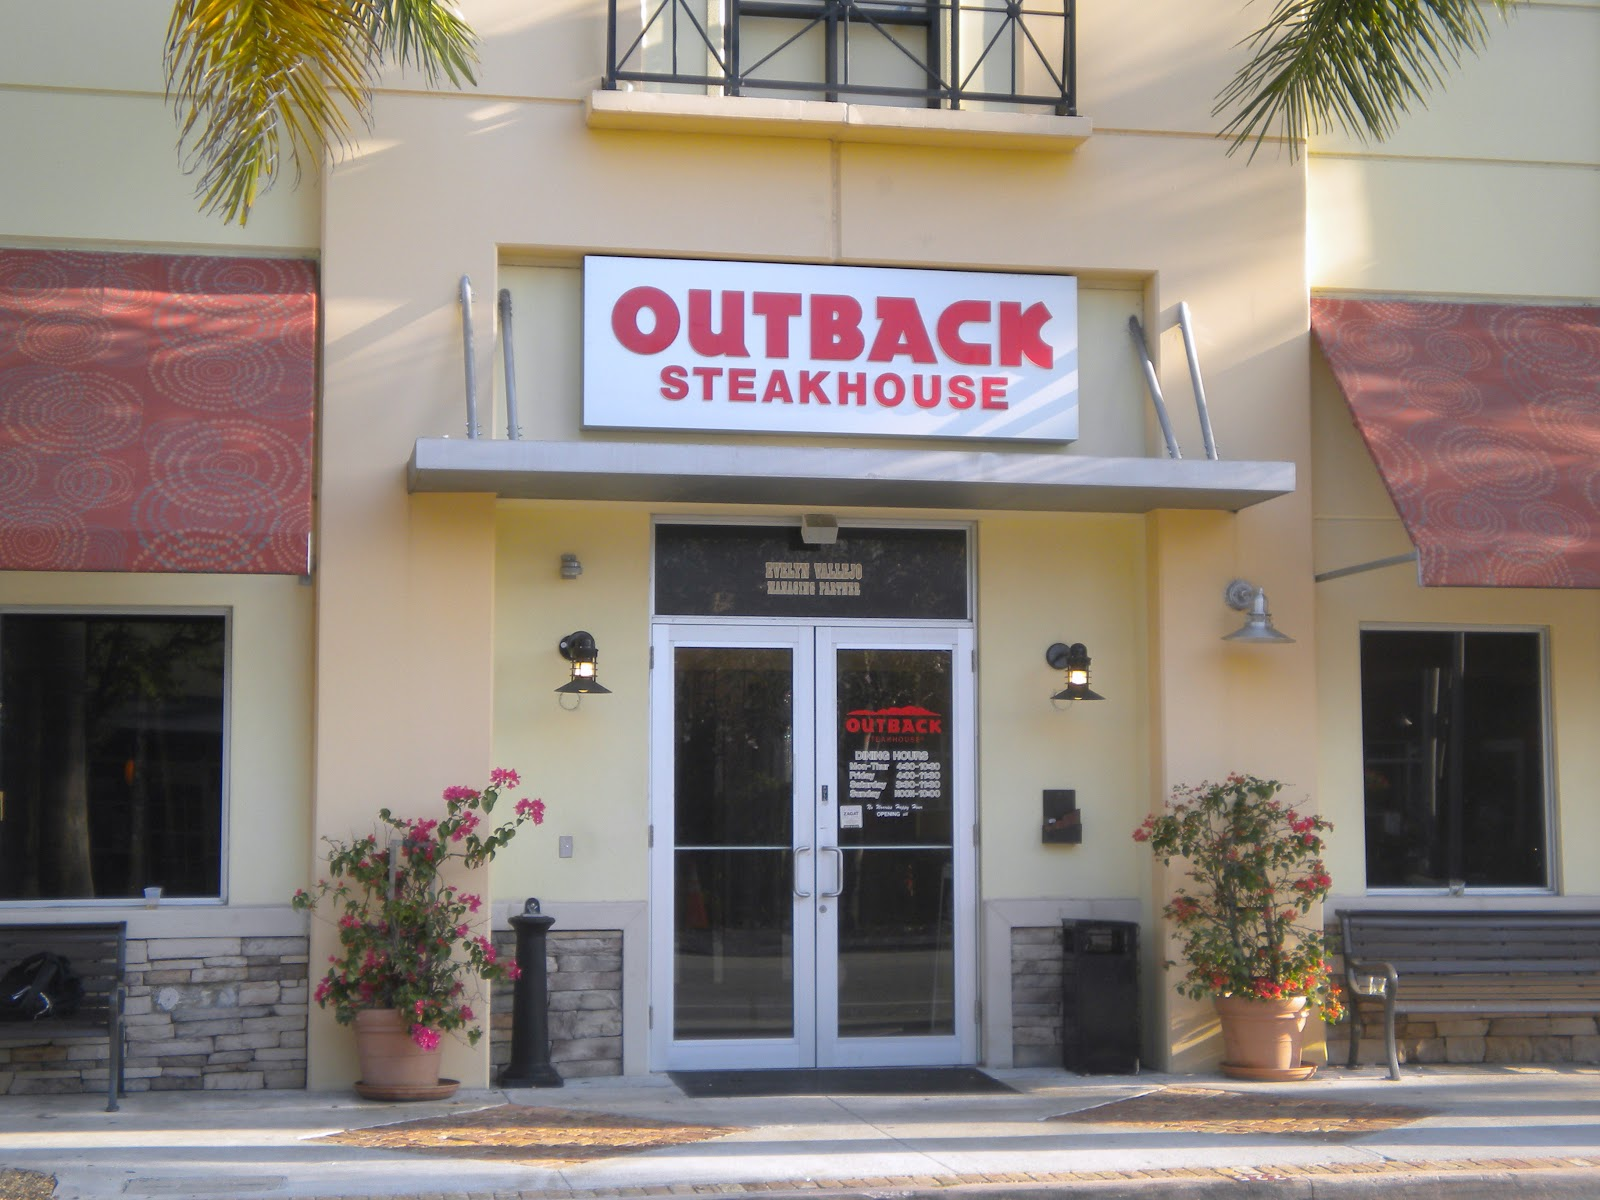 Jan 11,  · Outback Steakhouse History. Outback Steakhouse was founded in by Bob Basham, Chris T. Sullivan, Trudy Cooper, and Tim Gannon. Outback Steakhouse is an Australian-themed restaurant, with an emphasis on casual dining and large portions at affordable prices.